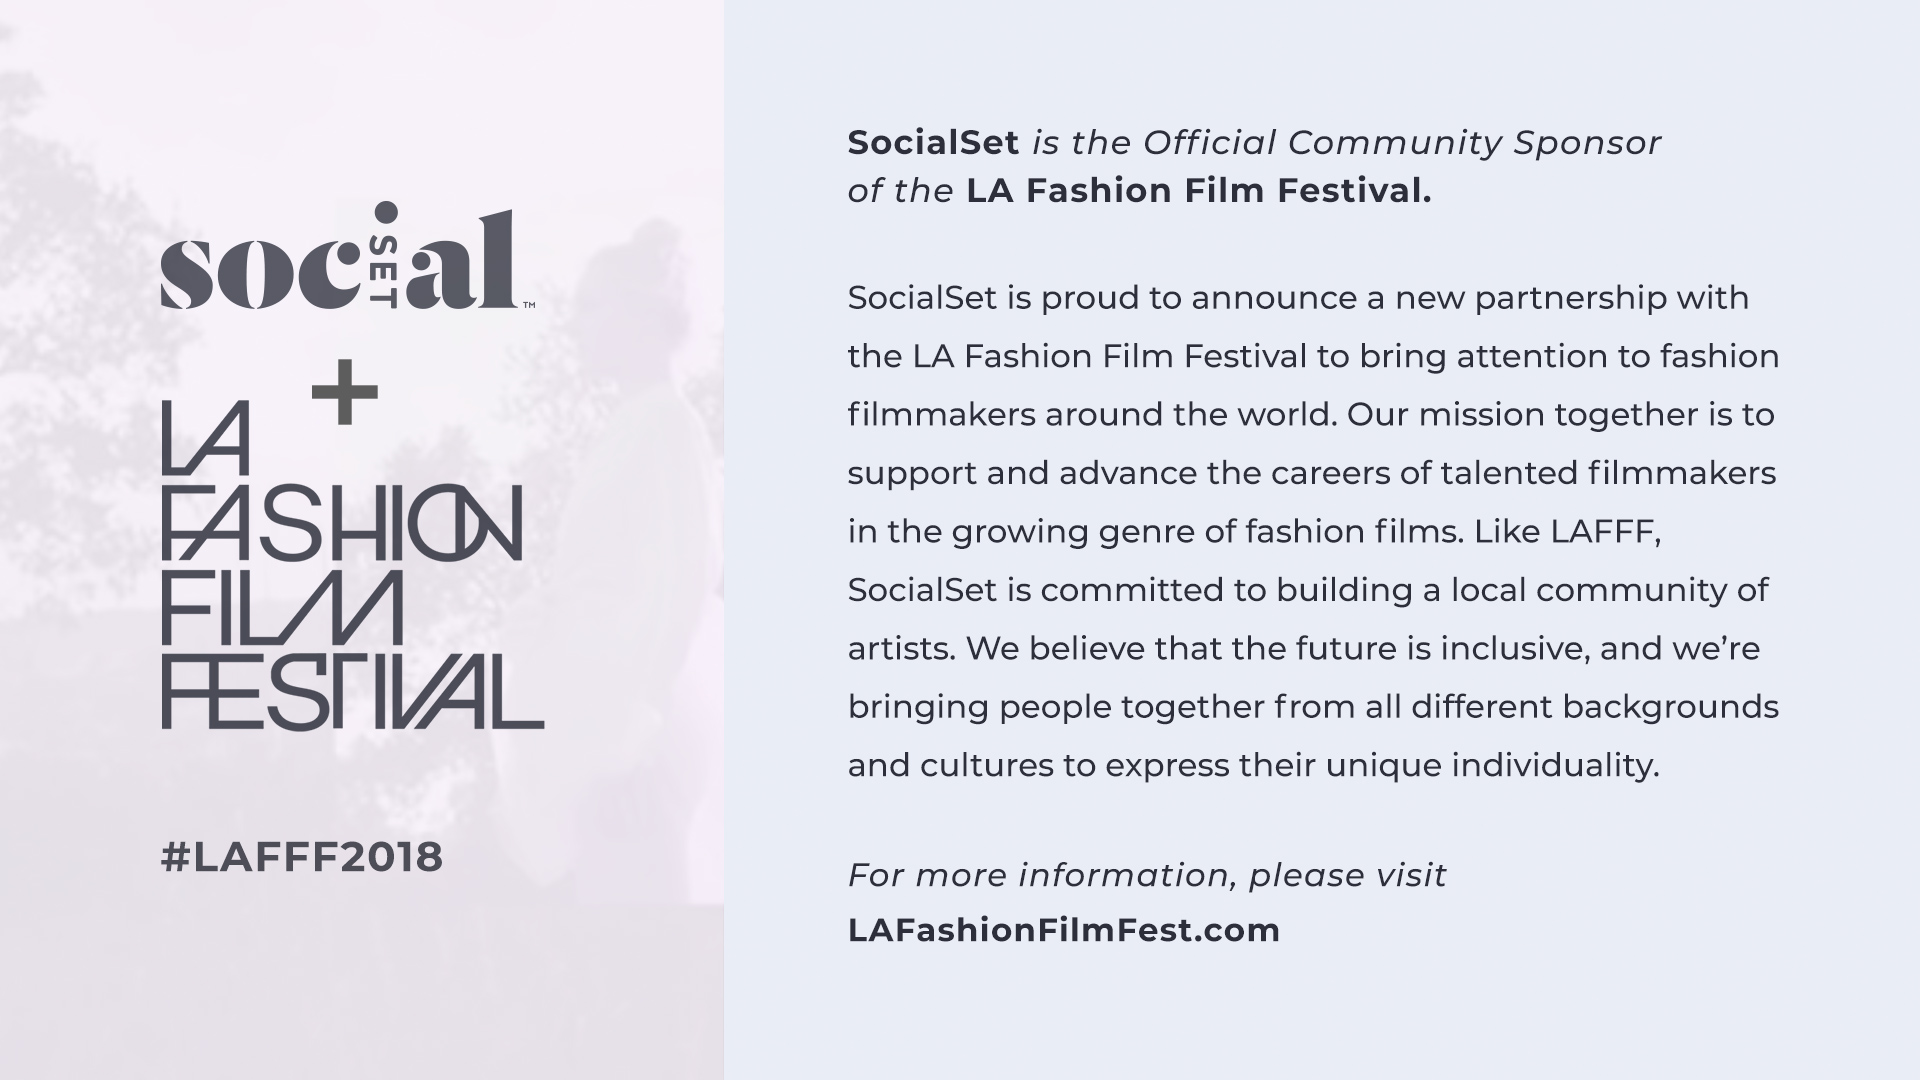 SocialSet is proud to support the mission of the LA Fashion Film Festival as the Official Community Sponsor